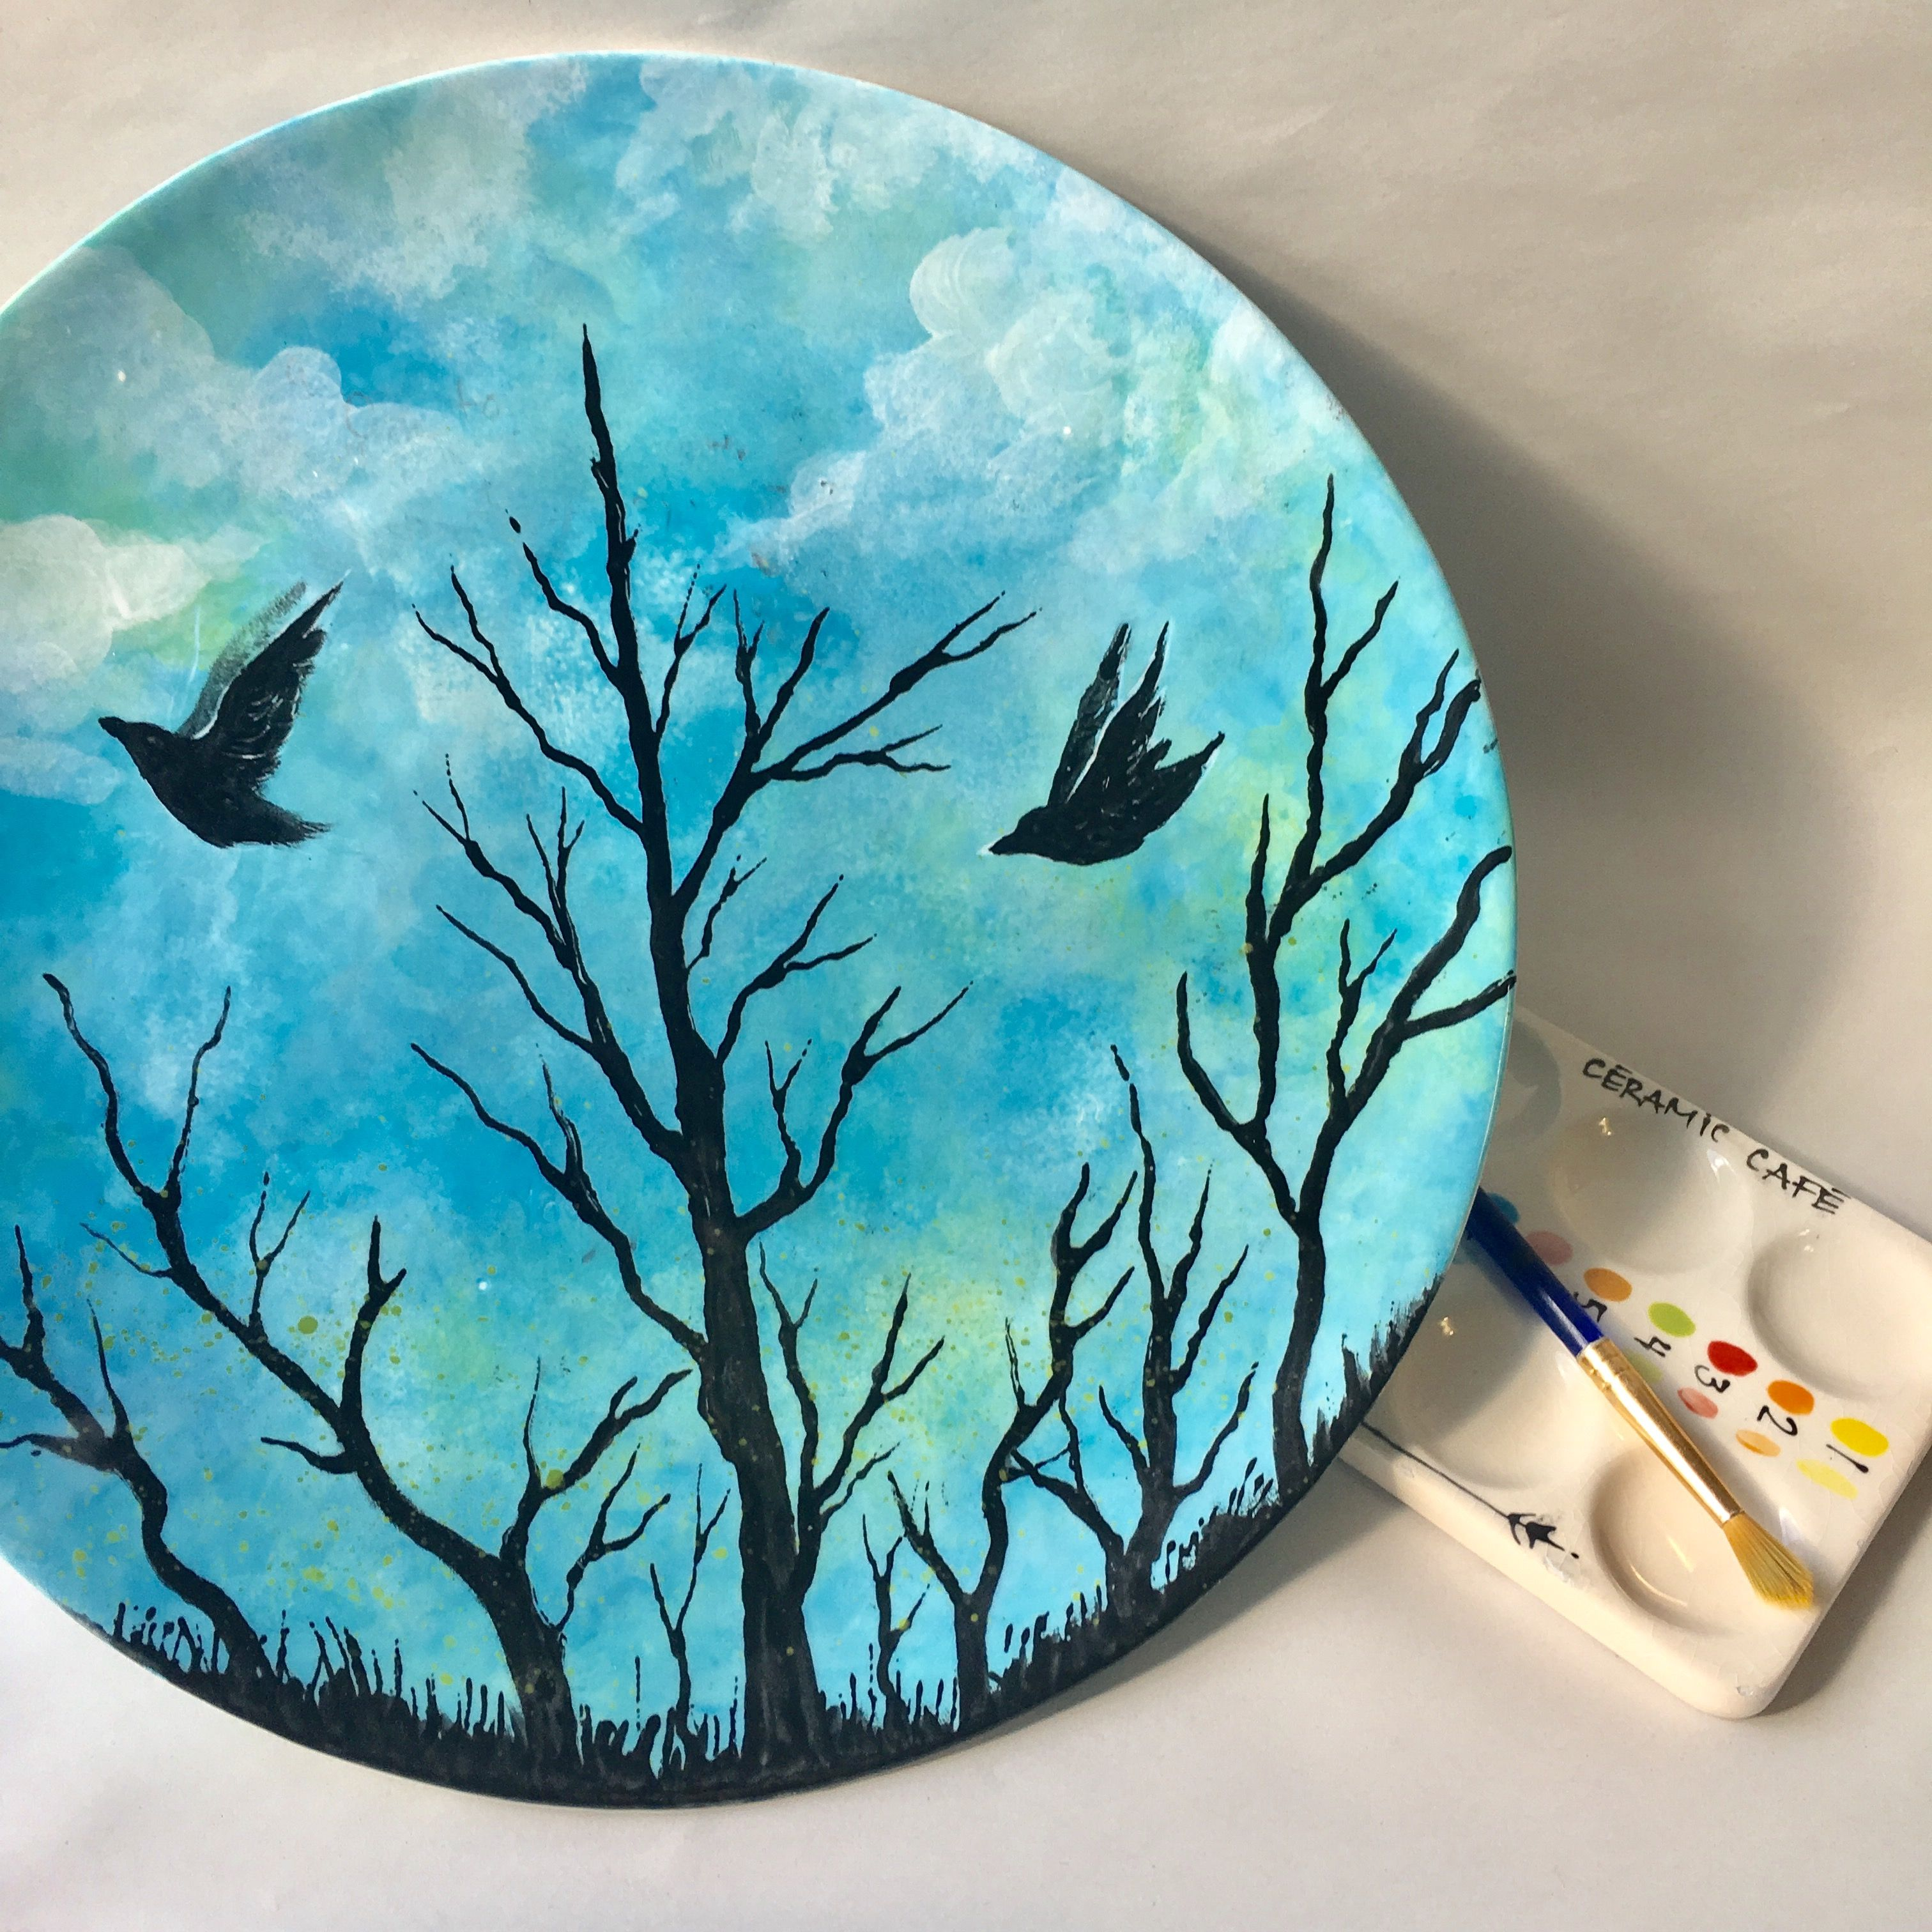 Assiette ronde | Hand painted plates, Painted plates, Hand painted